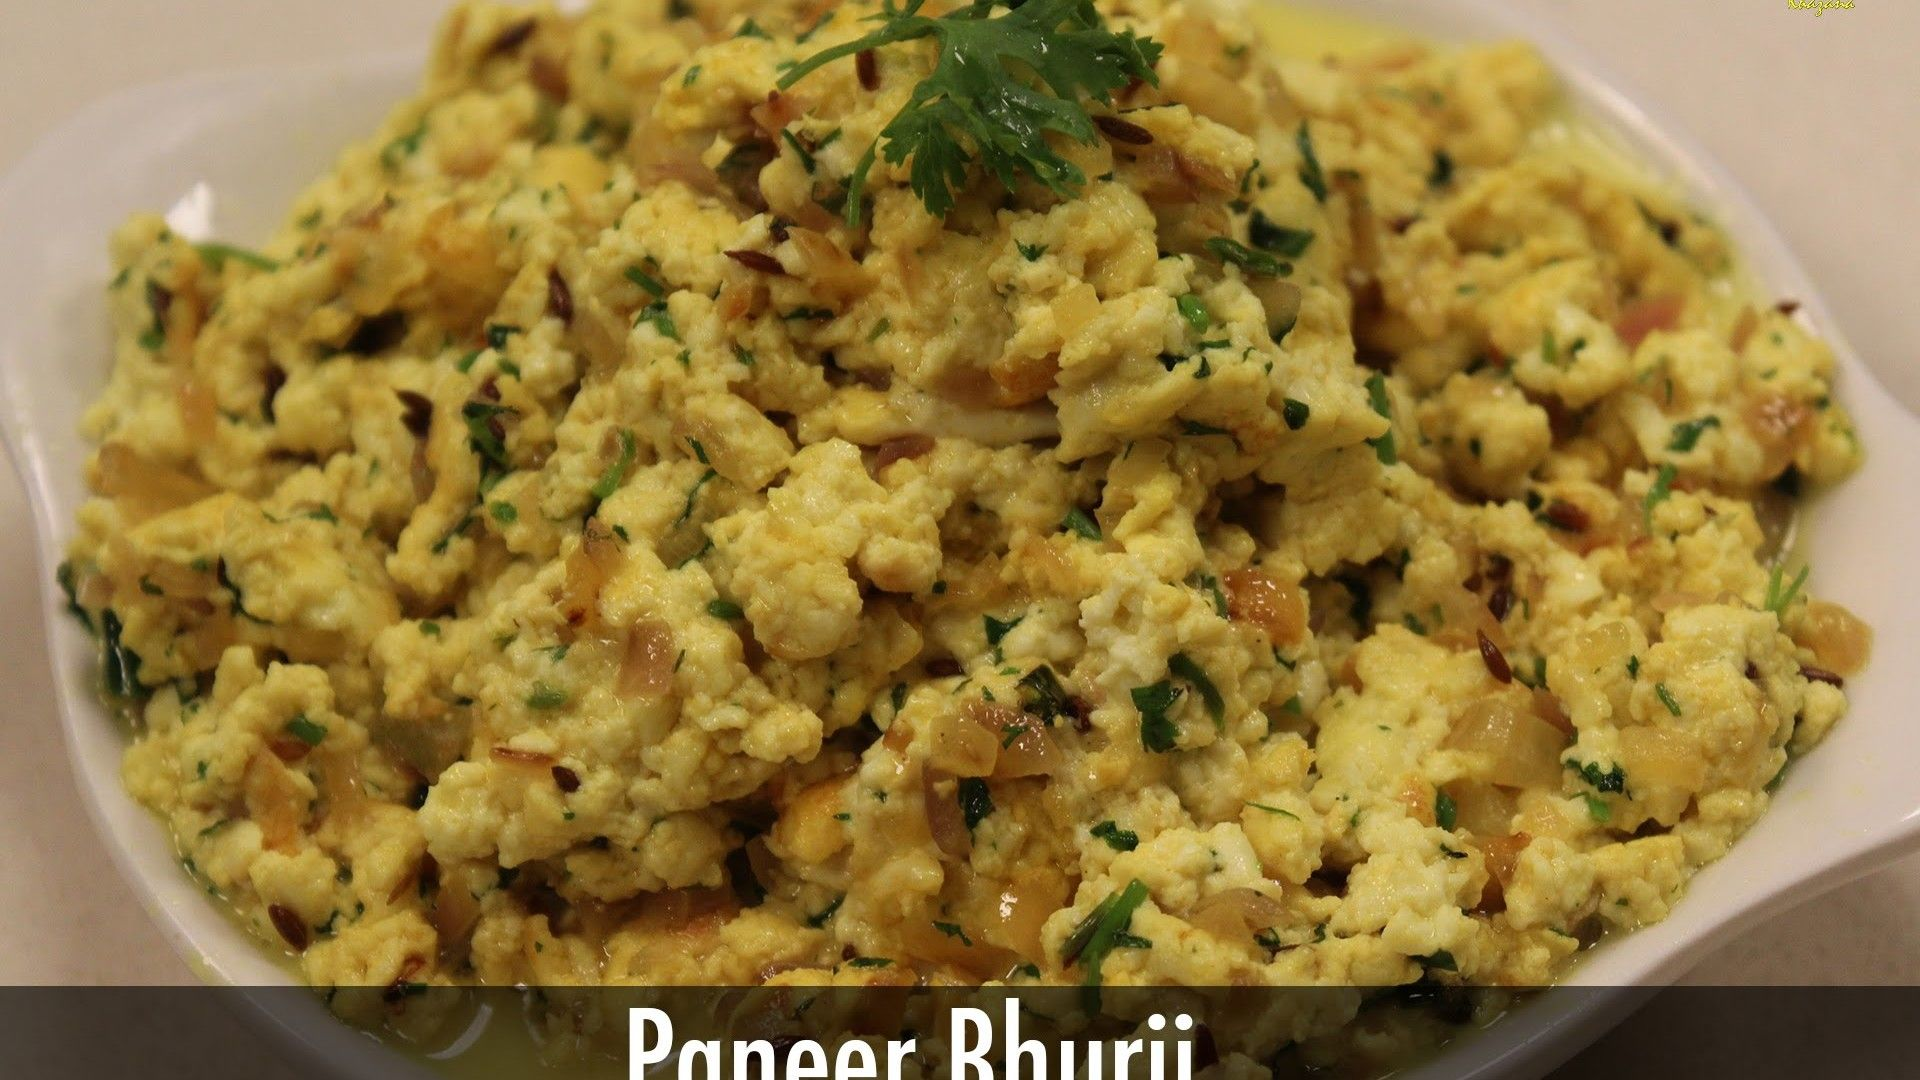 Paneer bhurji indian vegetarian recipes sanjeev kapoor khazana food paneer bhurji indian vegetarian recipes sanjeev kapoor khazana forumfinder Choice Image